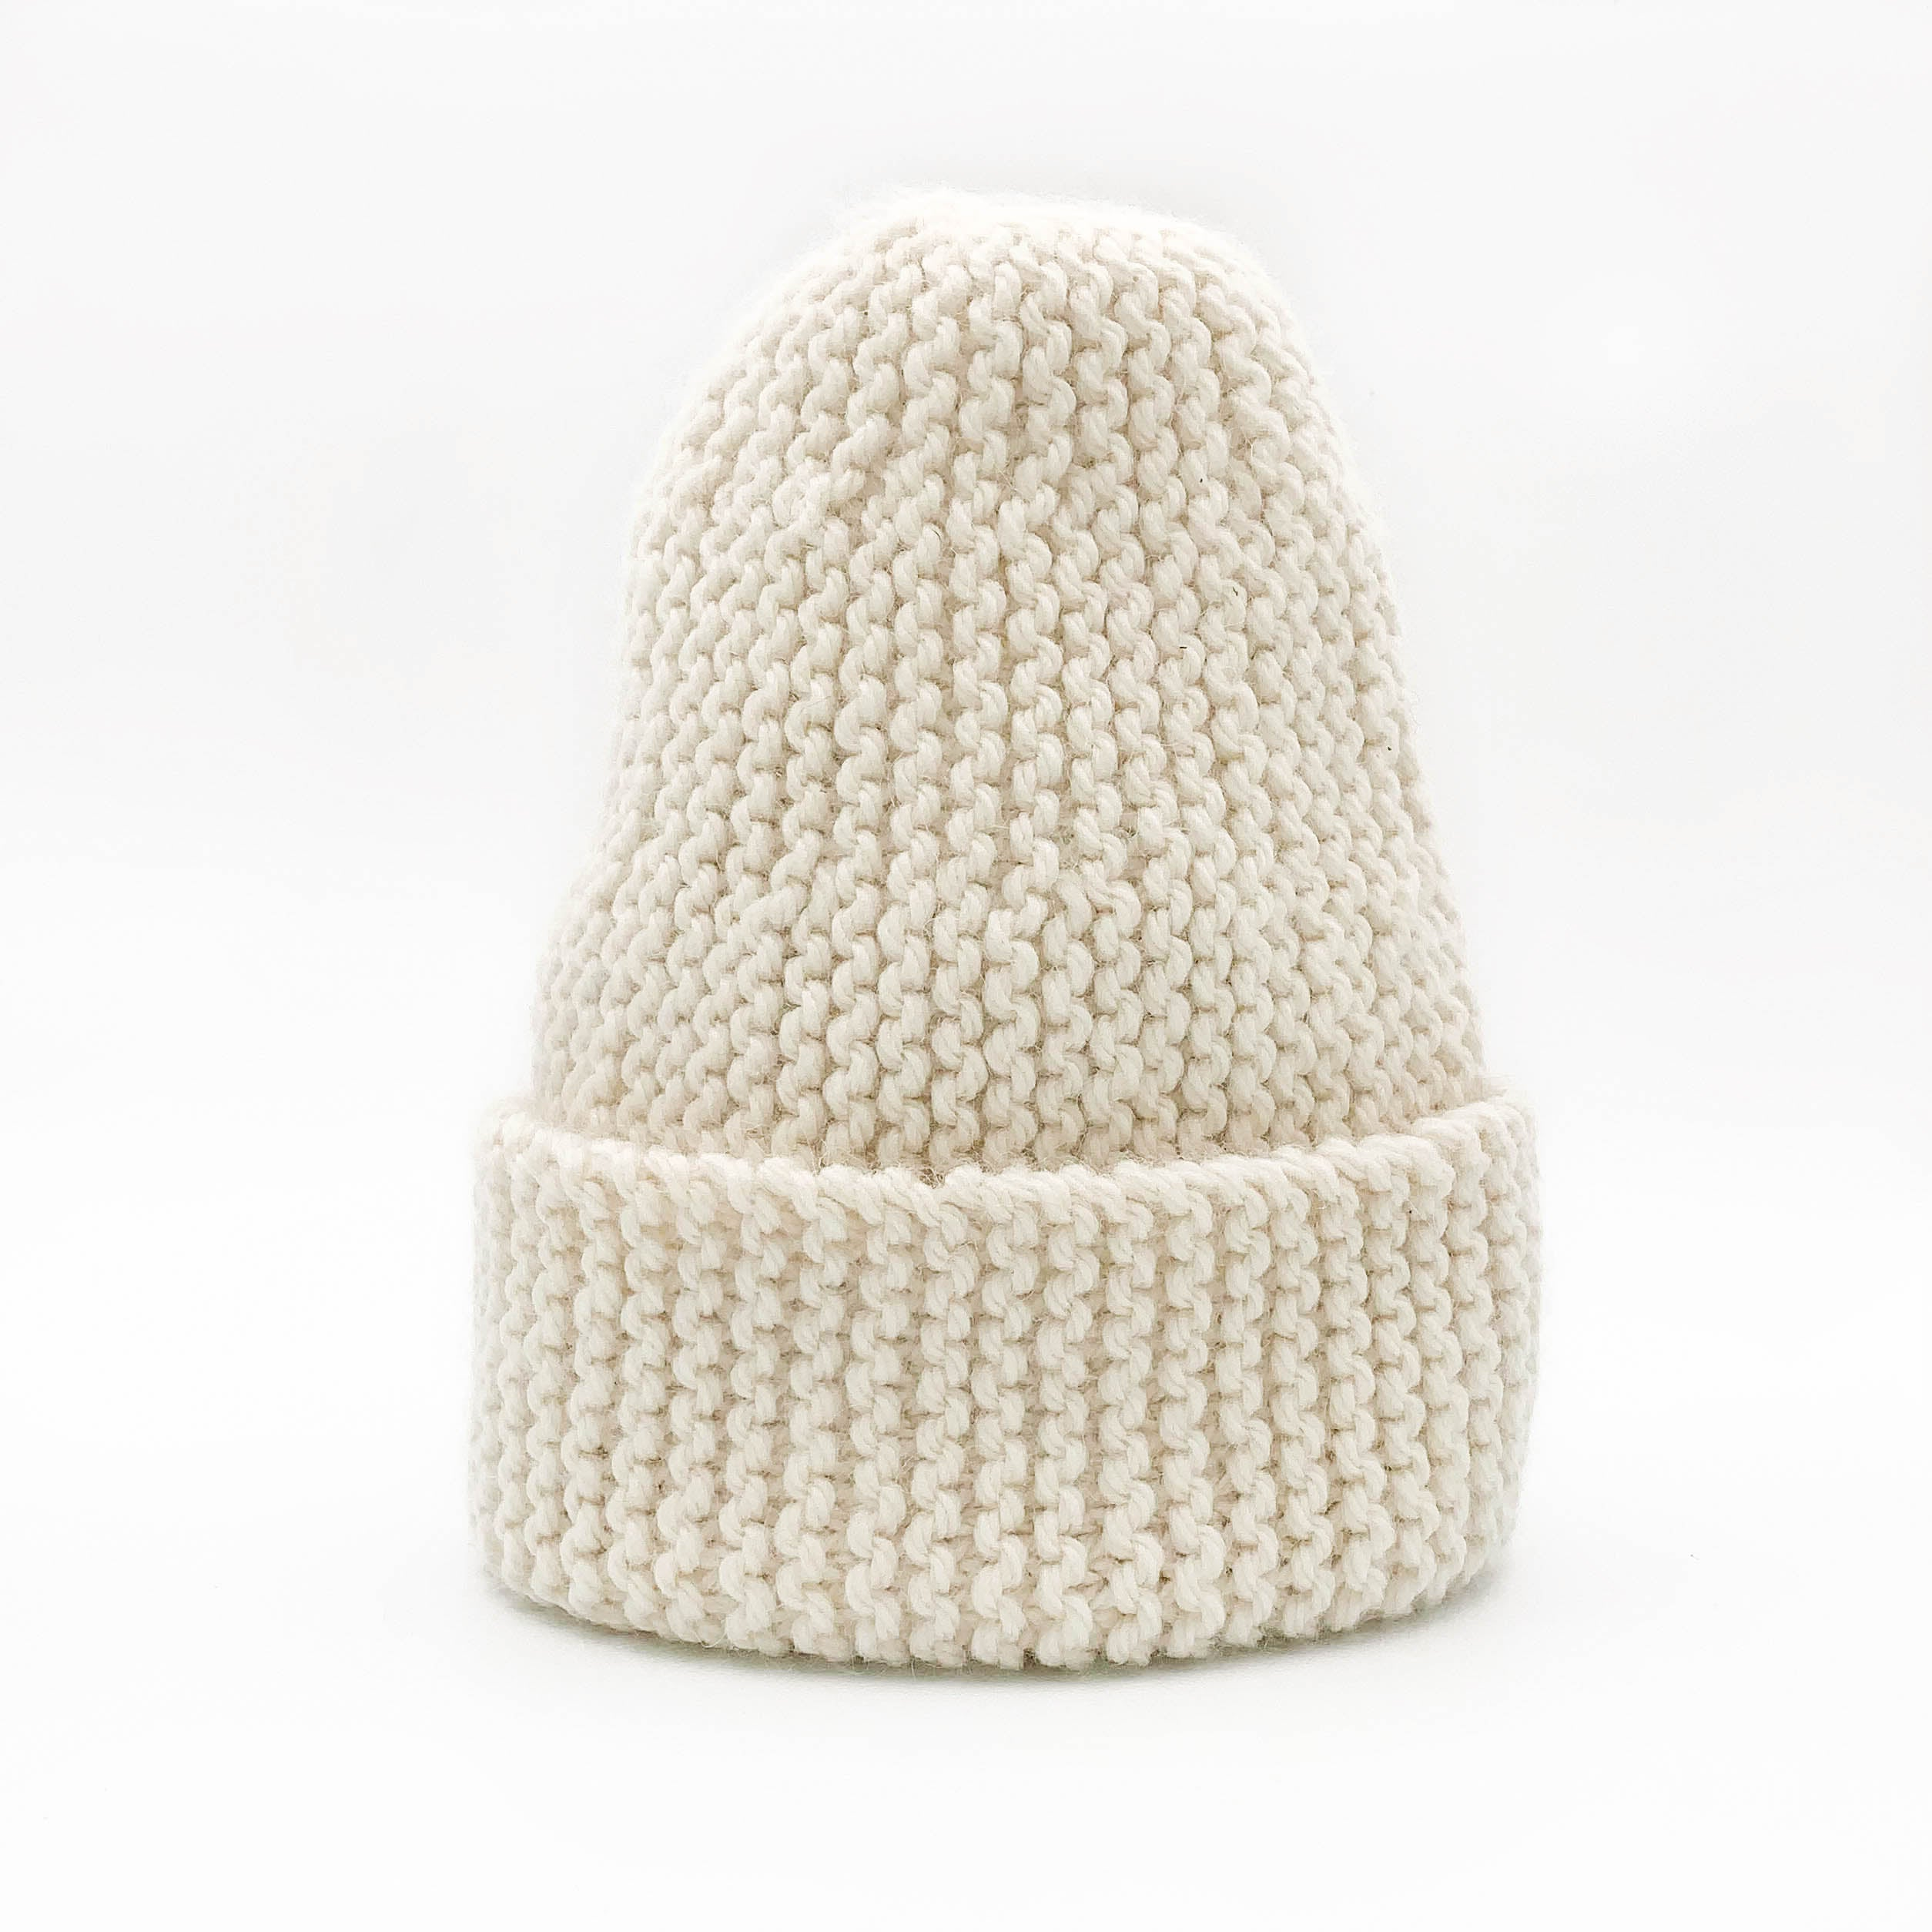 BREXTON HAT KIT